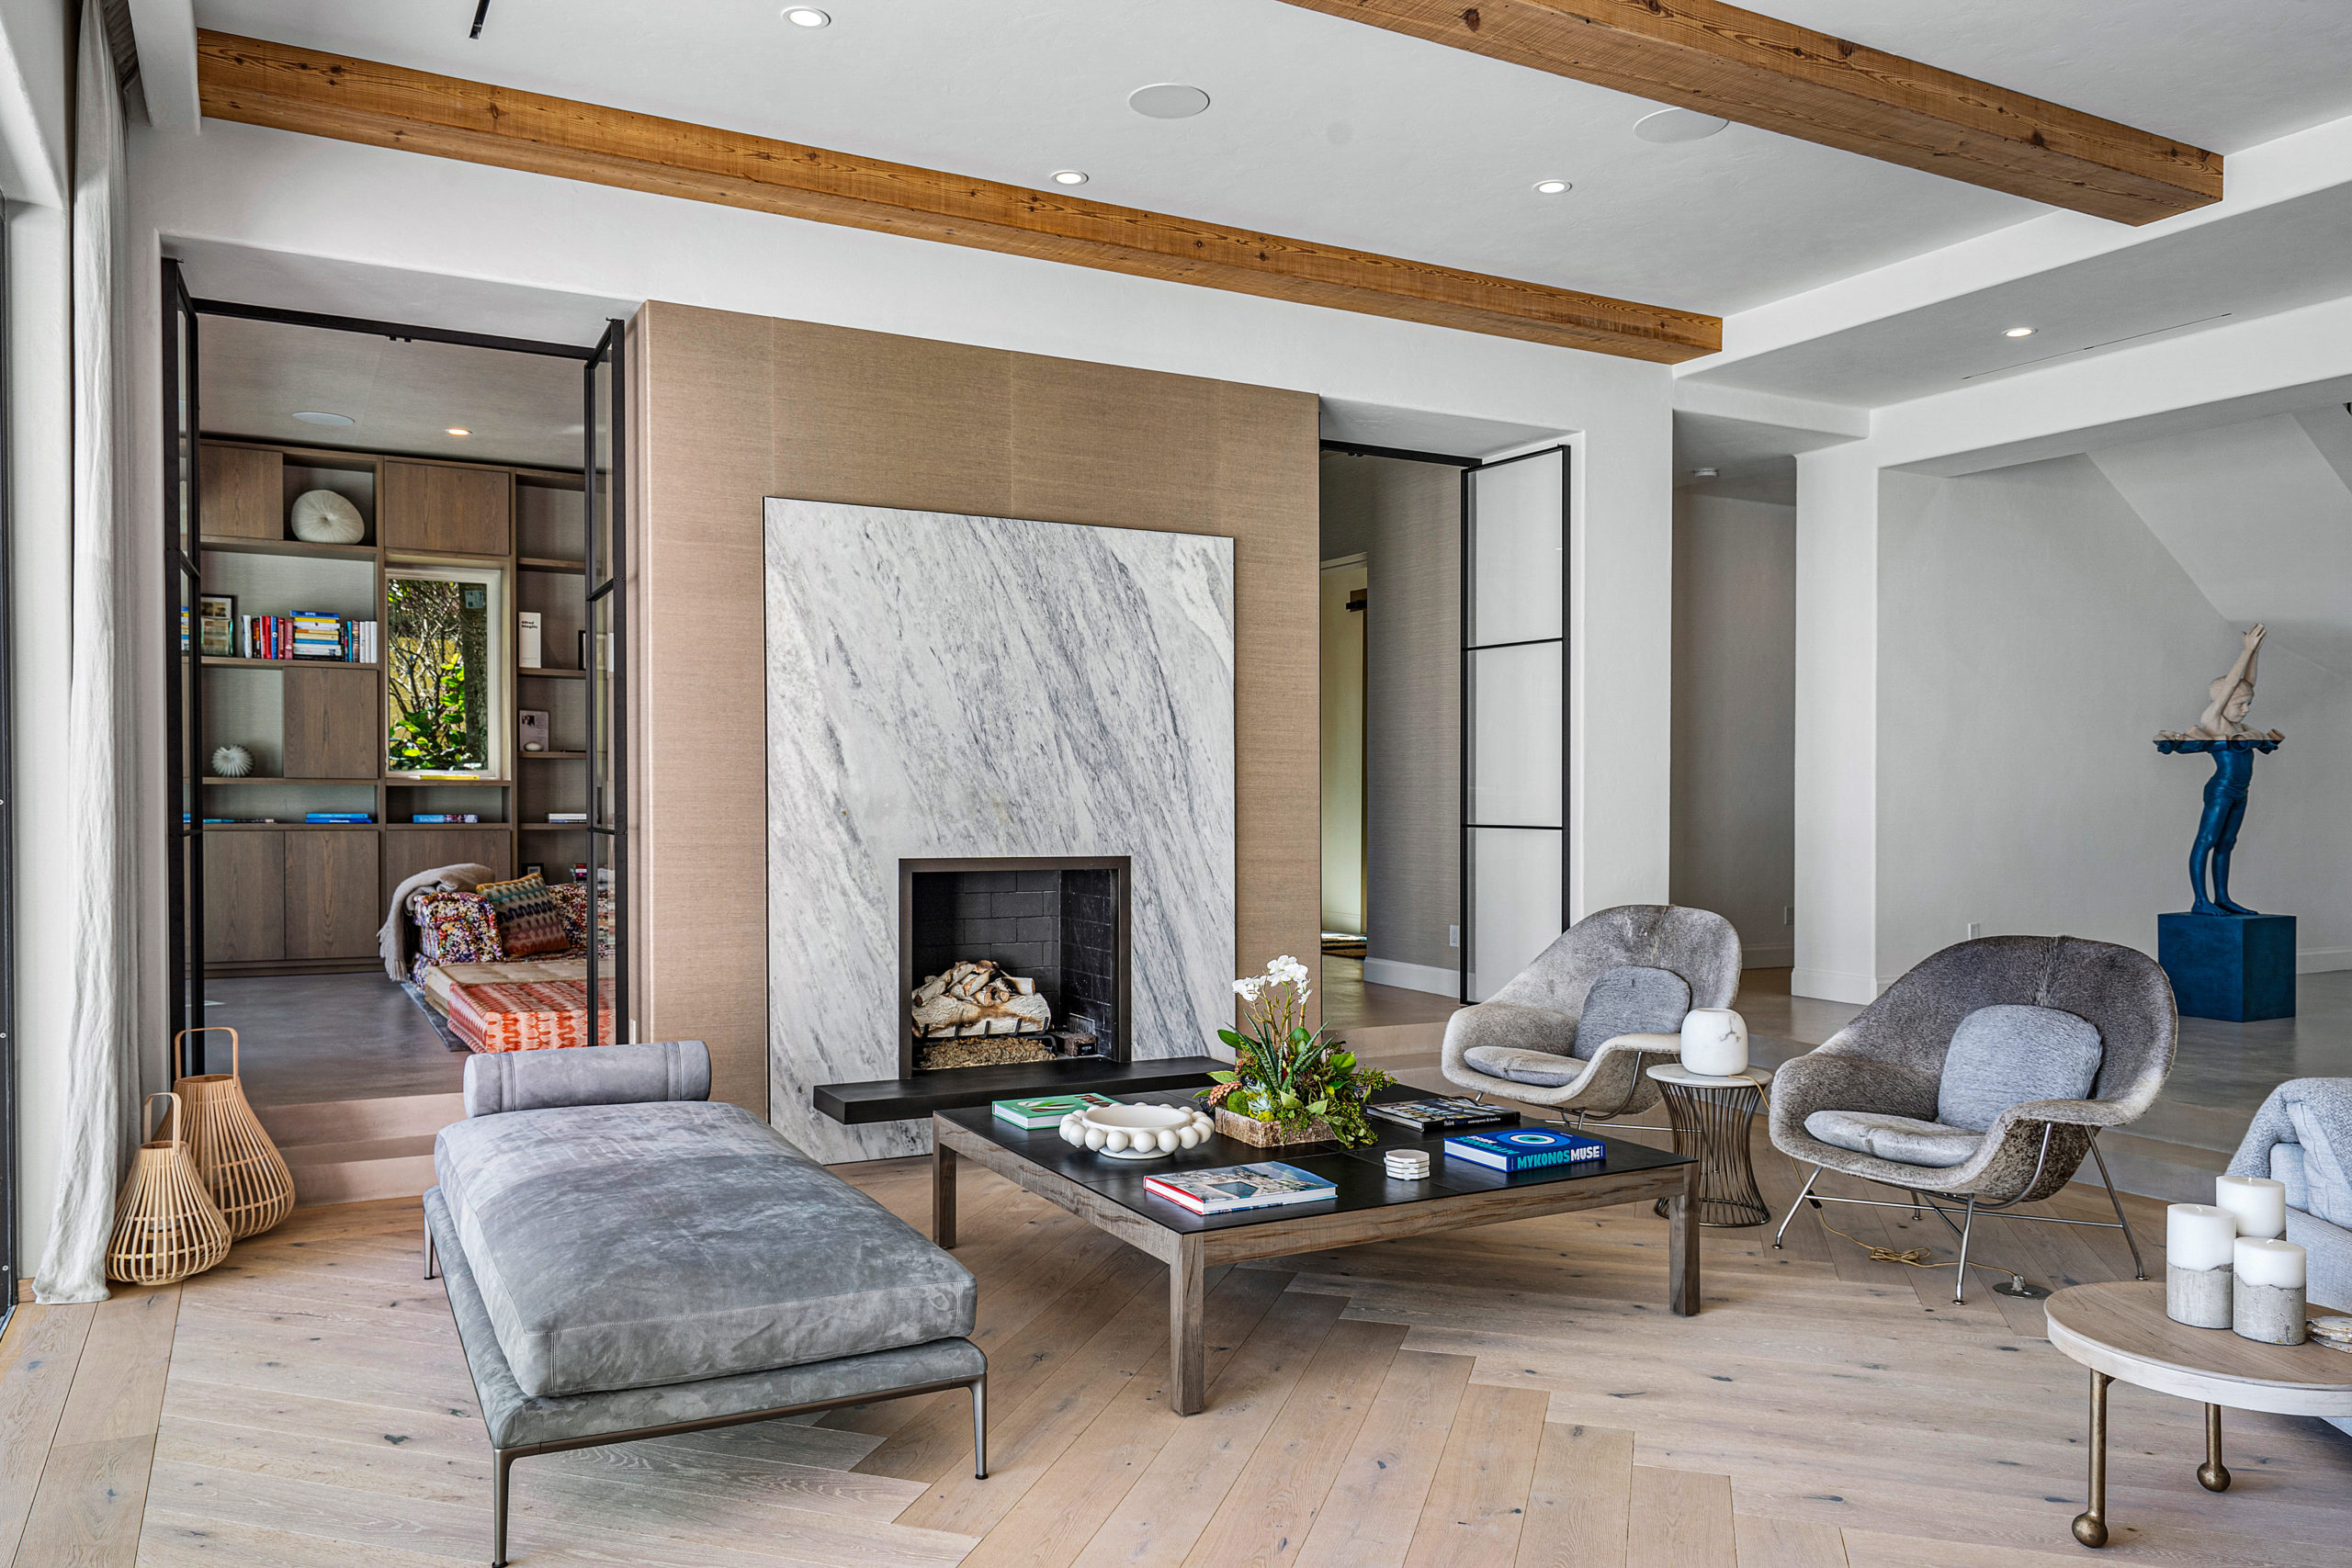 TOP TRENDS IN HOME DESIGN FOR 2021